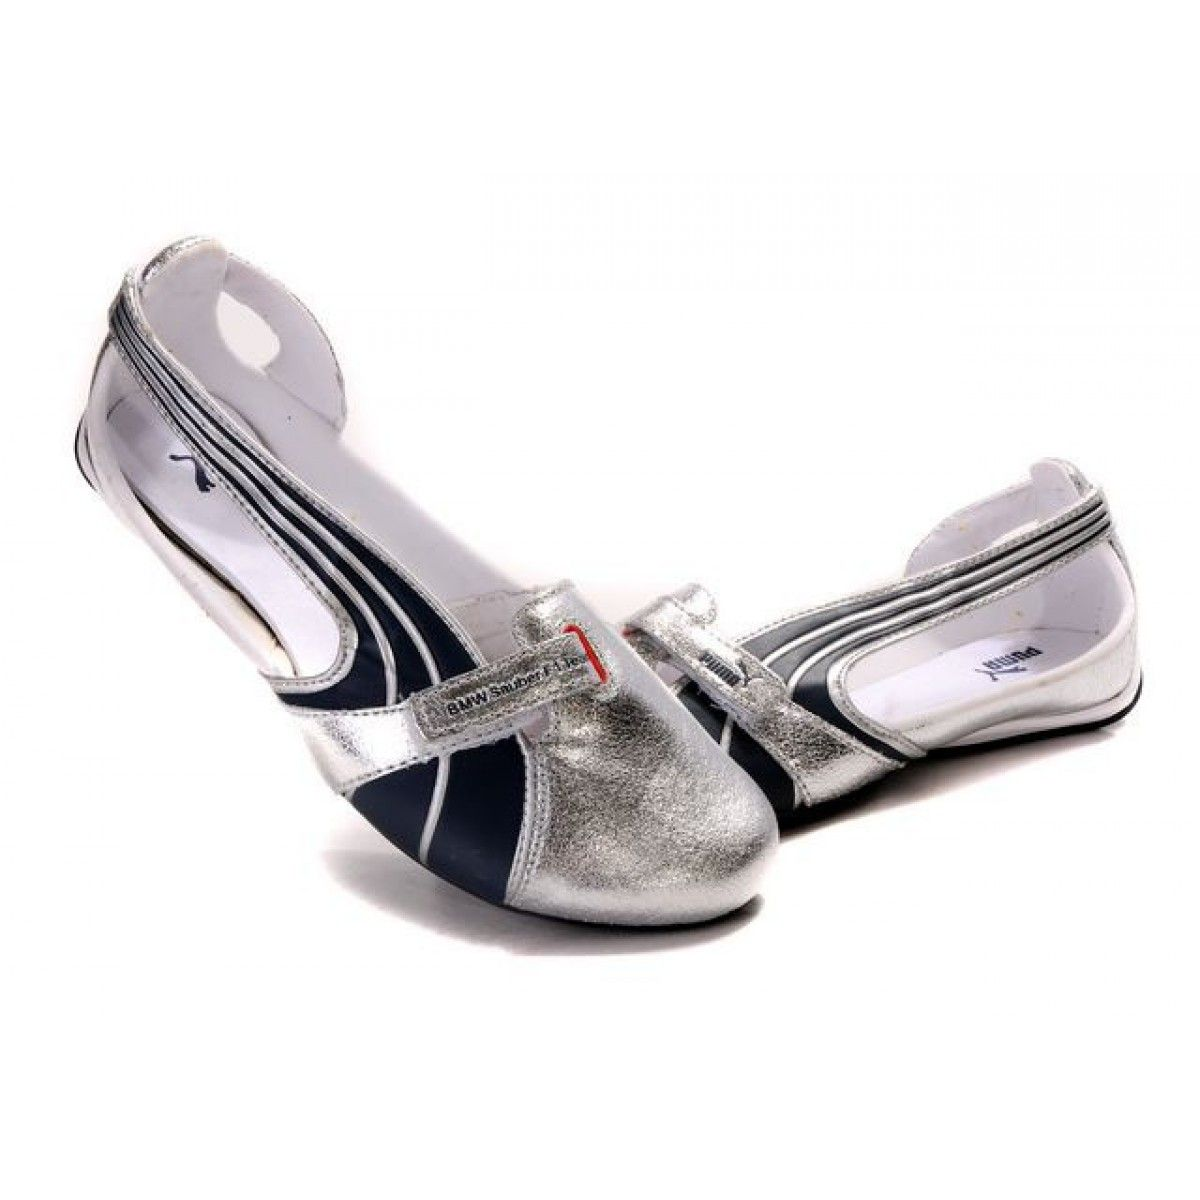 brand new e2d4f e0669 Ballet Flats On Sale   Puma Espera II Ballerina Flats Womens Sandals -  Silver Black on sale